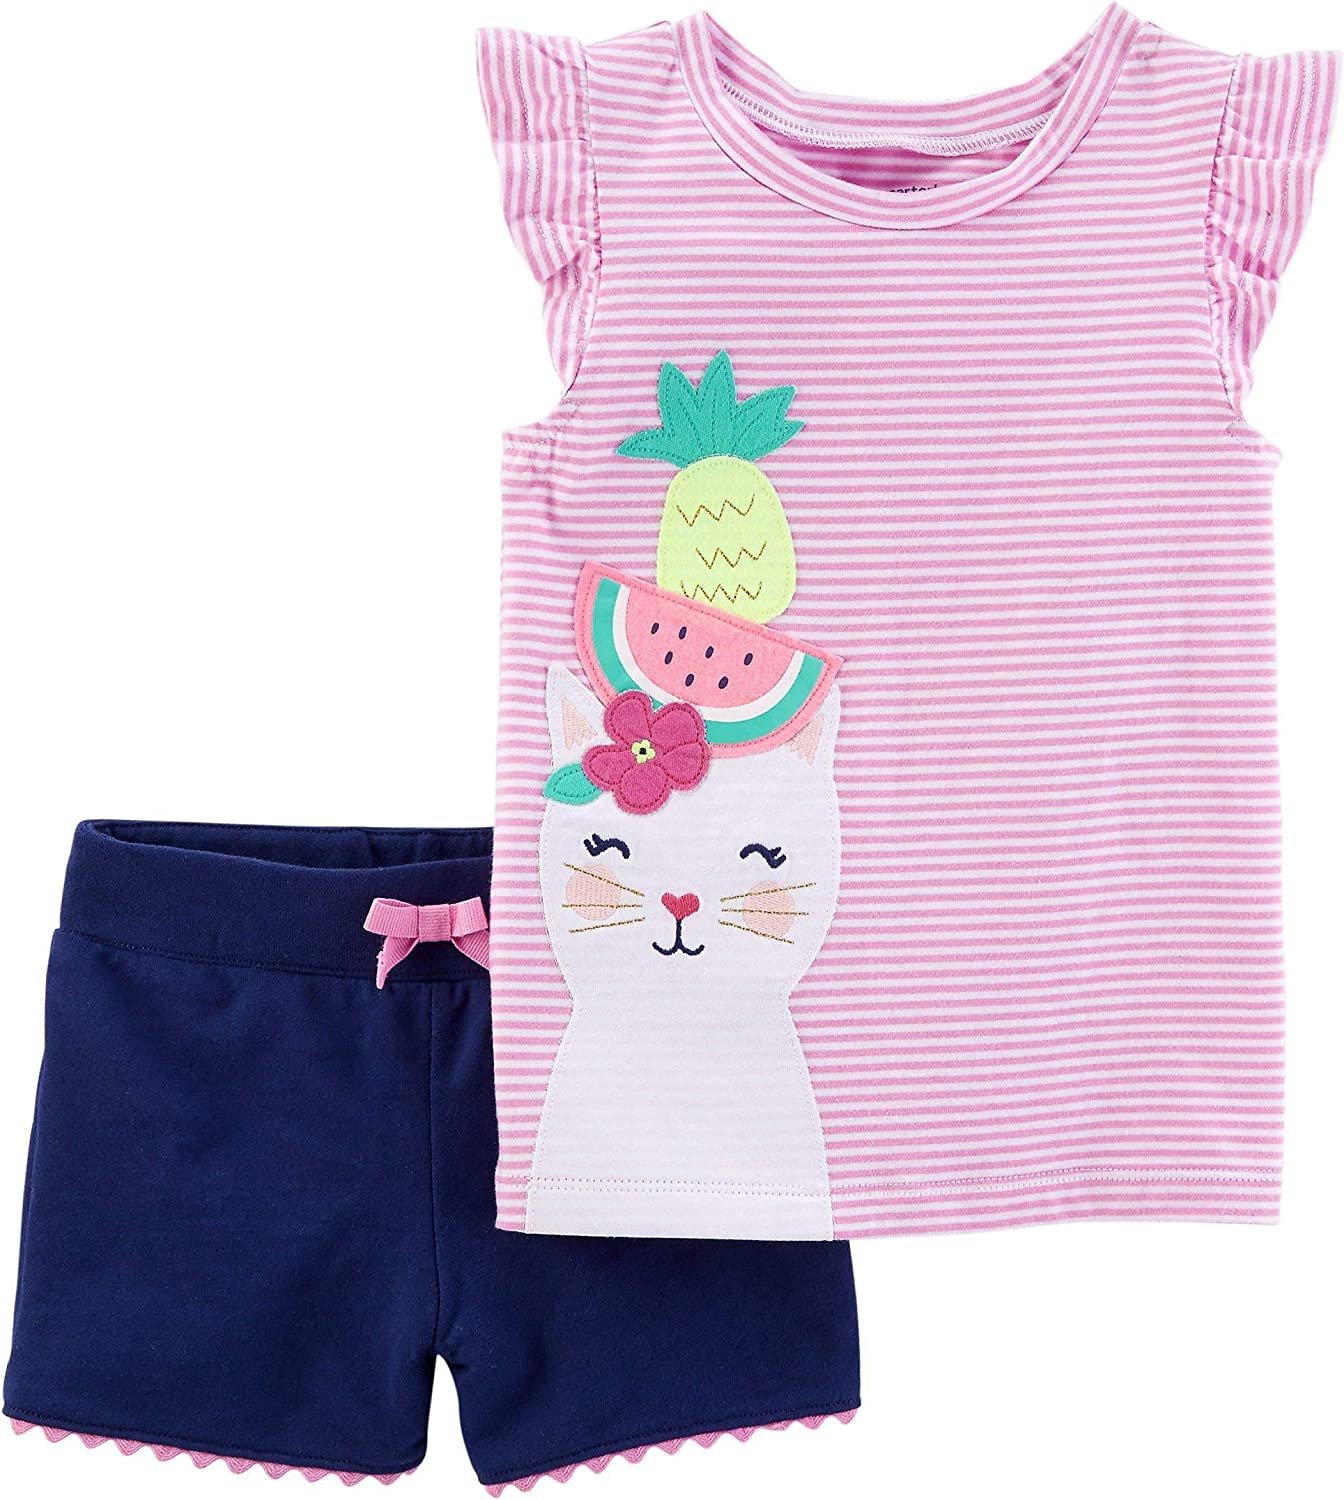 Carters Infant /& Toddler Girls Purple Kitty Cat Baby Outfit Shirt /& Shorts